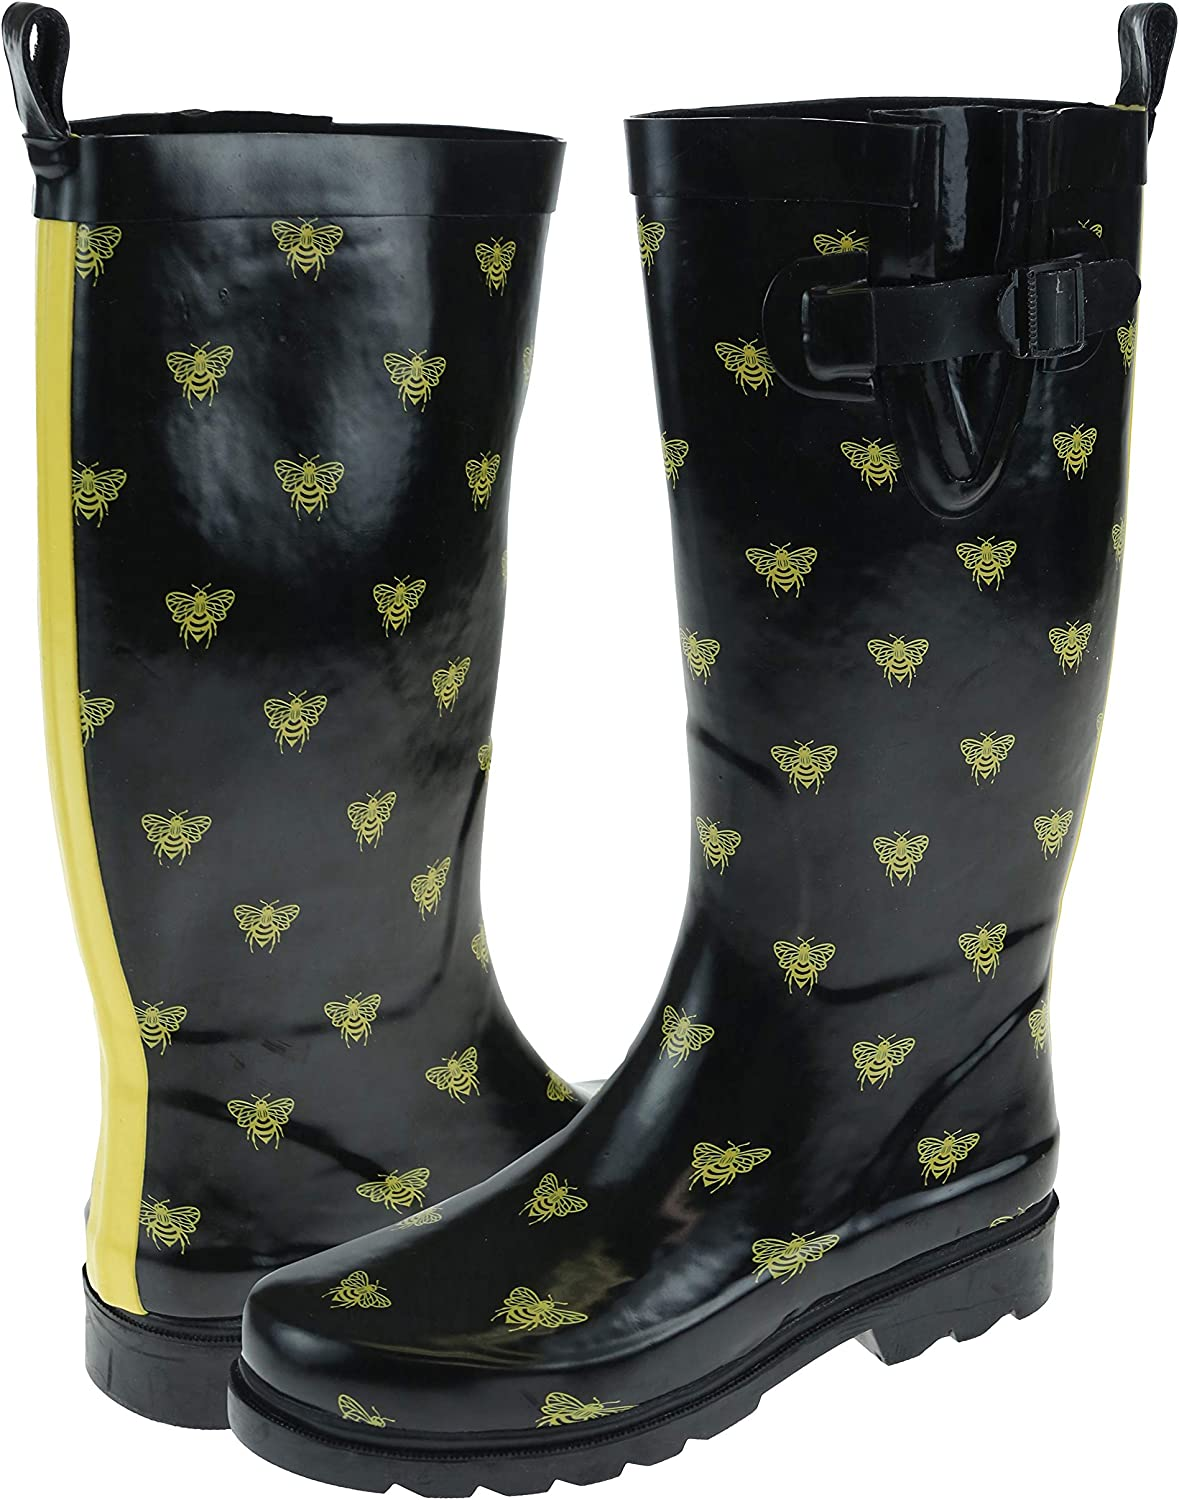 Capelli Indianapolis Mall New York Ladies Shiny Boots Rubber Rain Tall Latest item